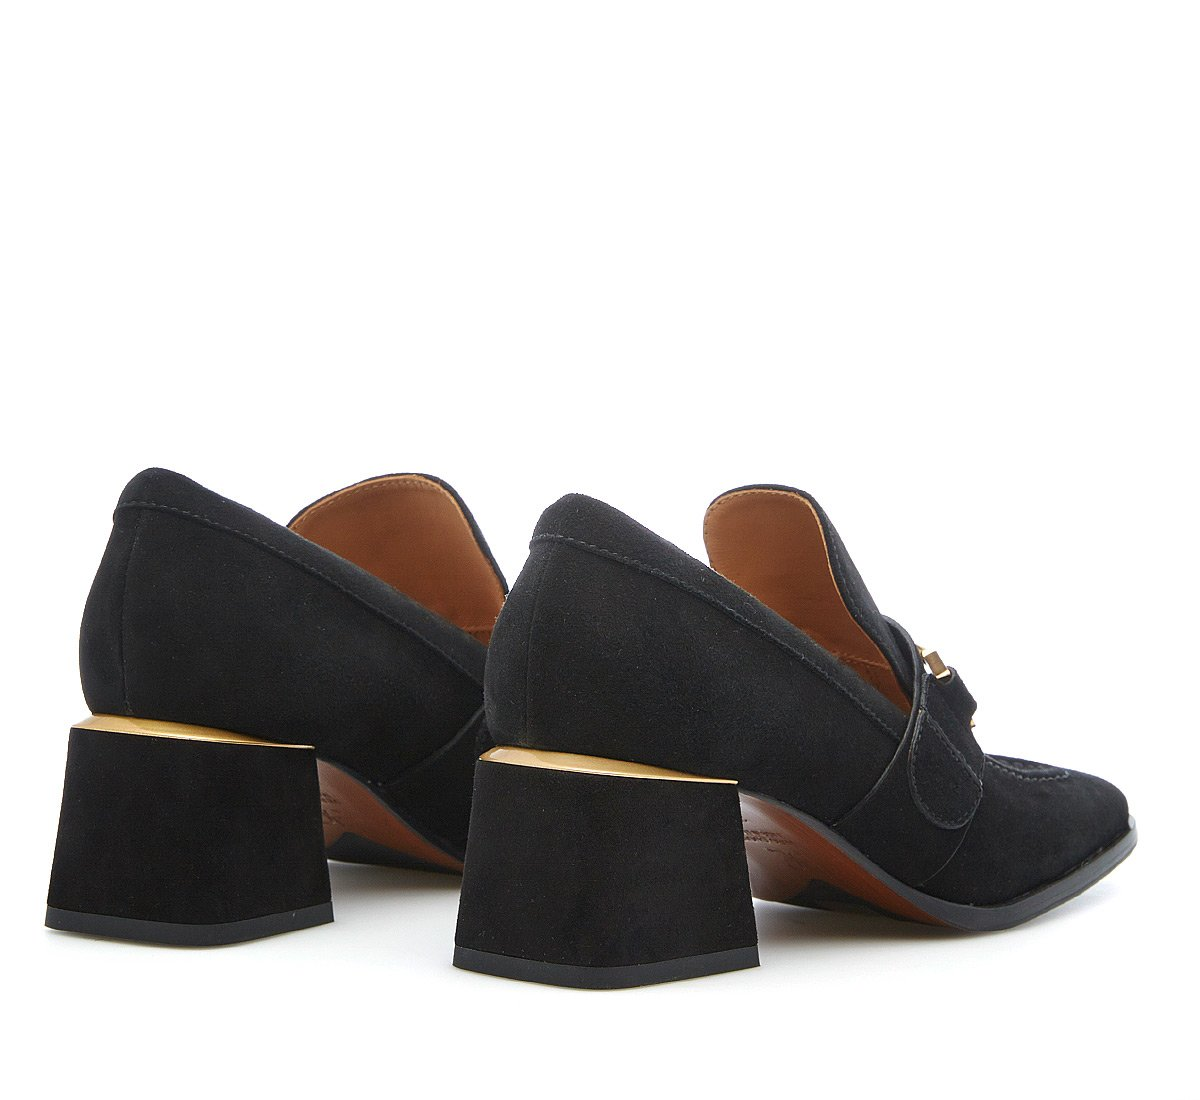 Loafer in luxury suede